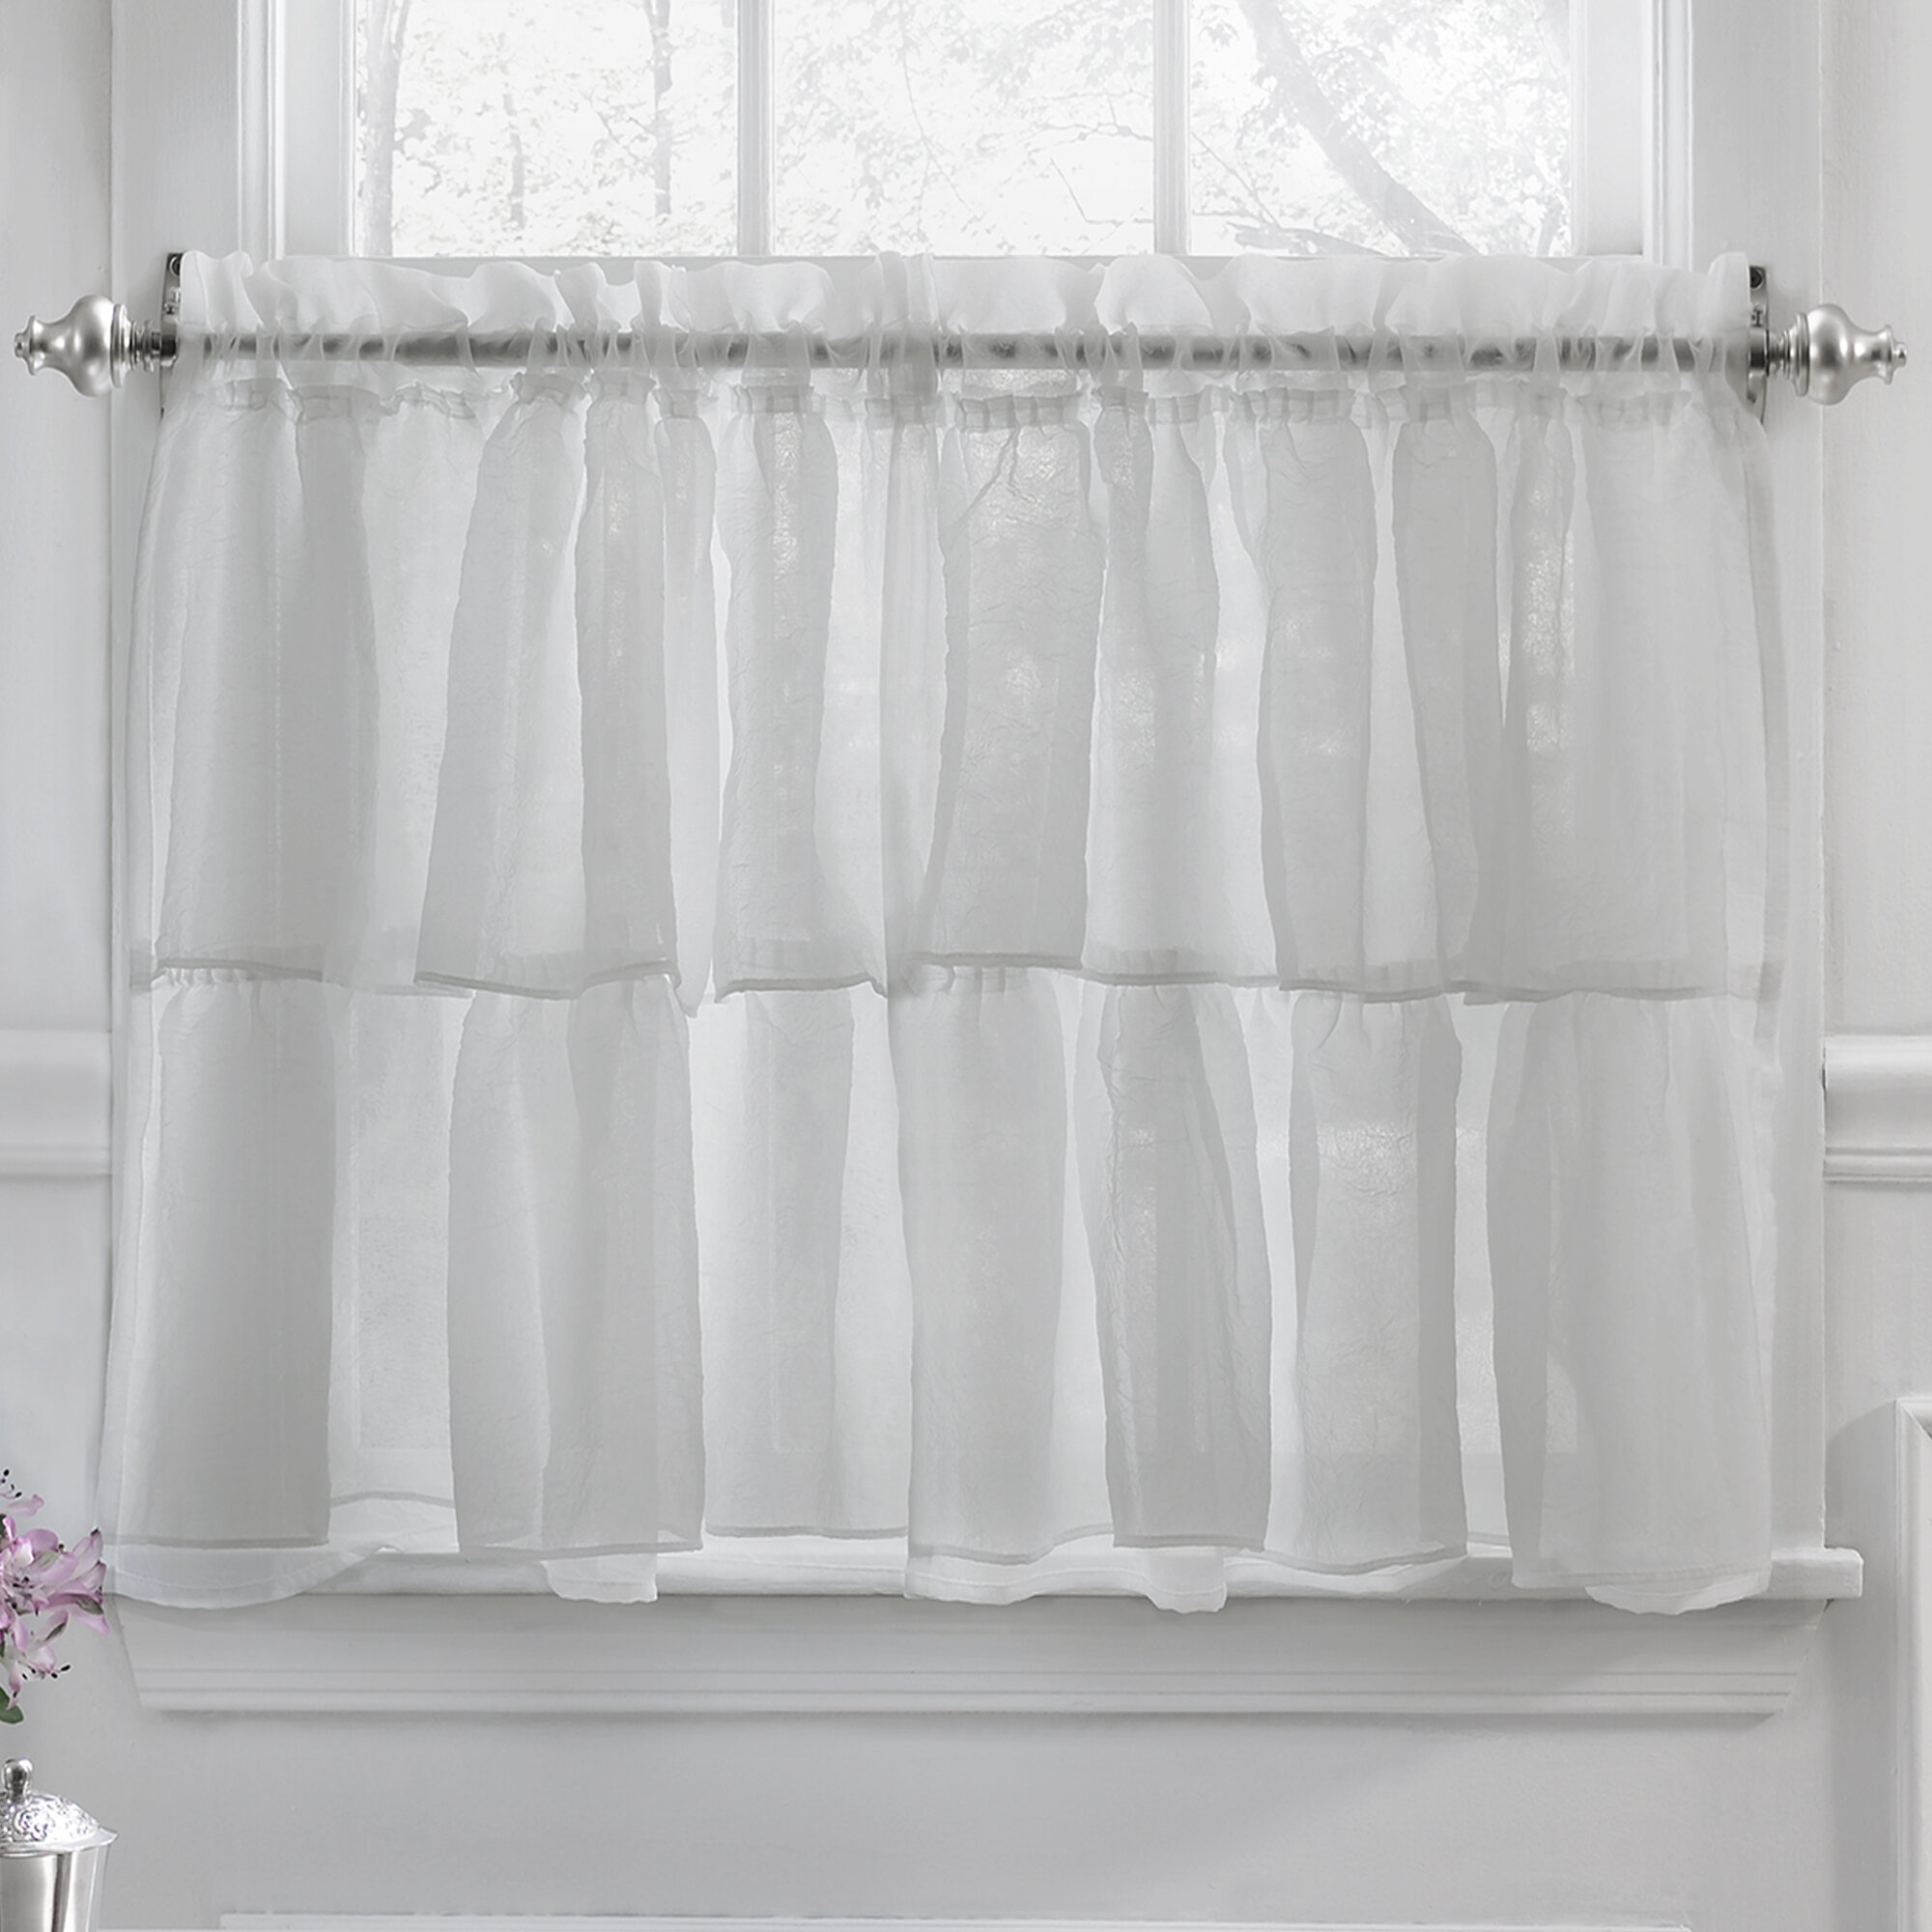 Elegant Crushed Voile Ruffle Kitchen Window Tier Cafe Curtain Pertaining To Classic Black And White Curtain Tiers (View 13 of 20)